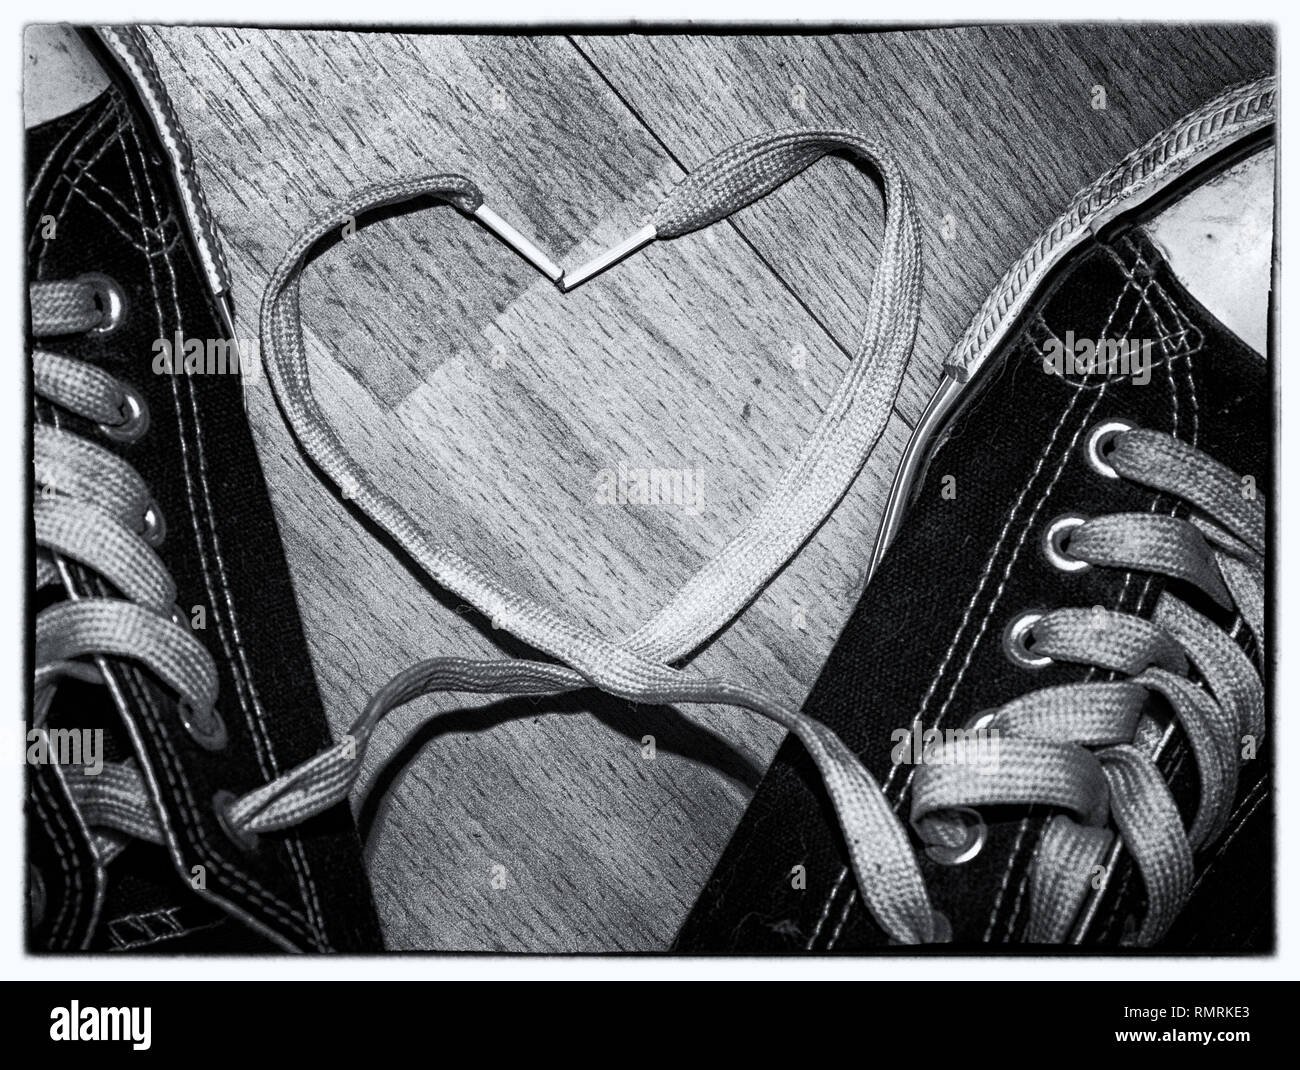 cead9794cbba black and white image of converse trainers shoes with the laces making a  heart shape